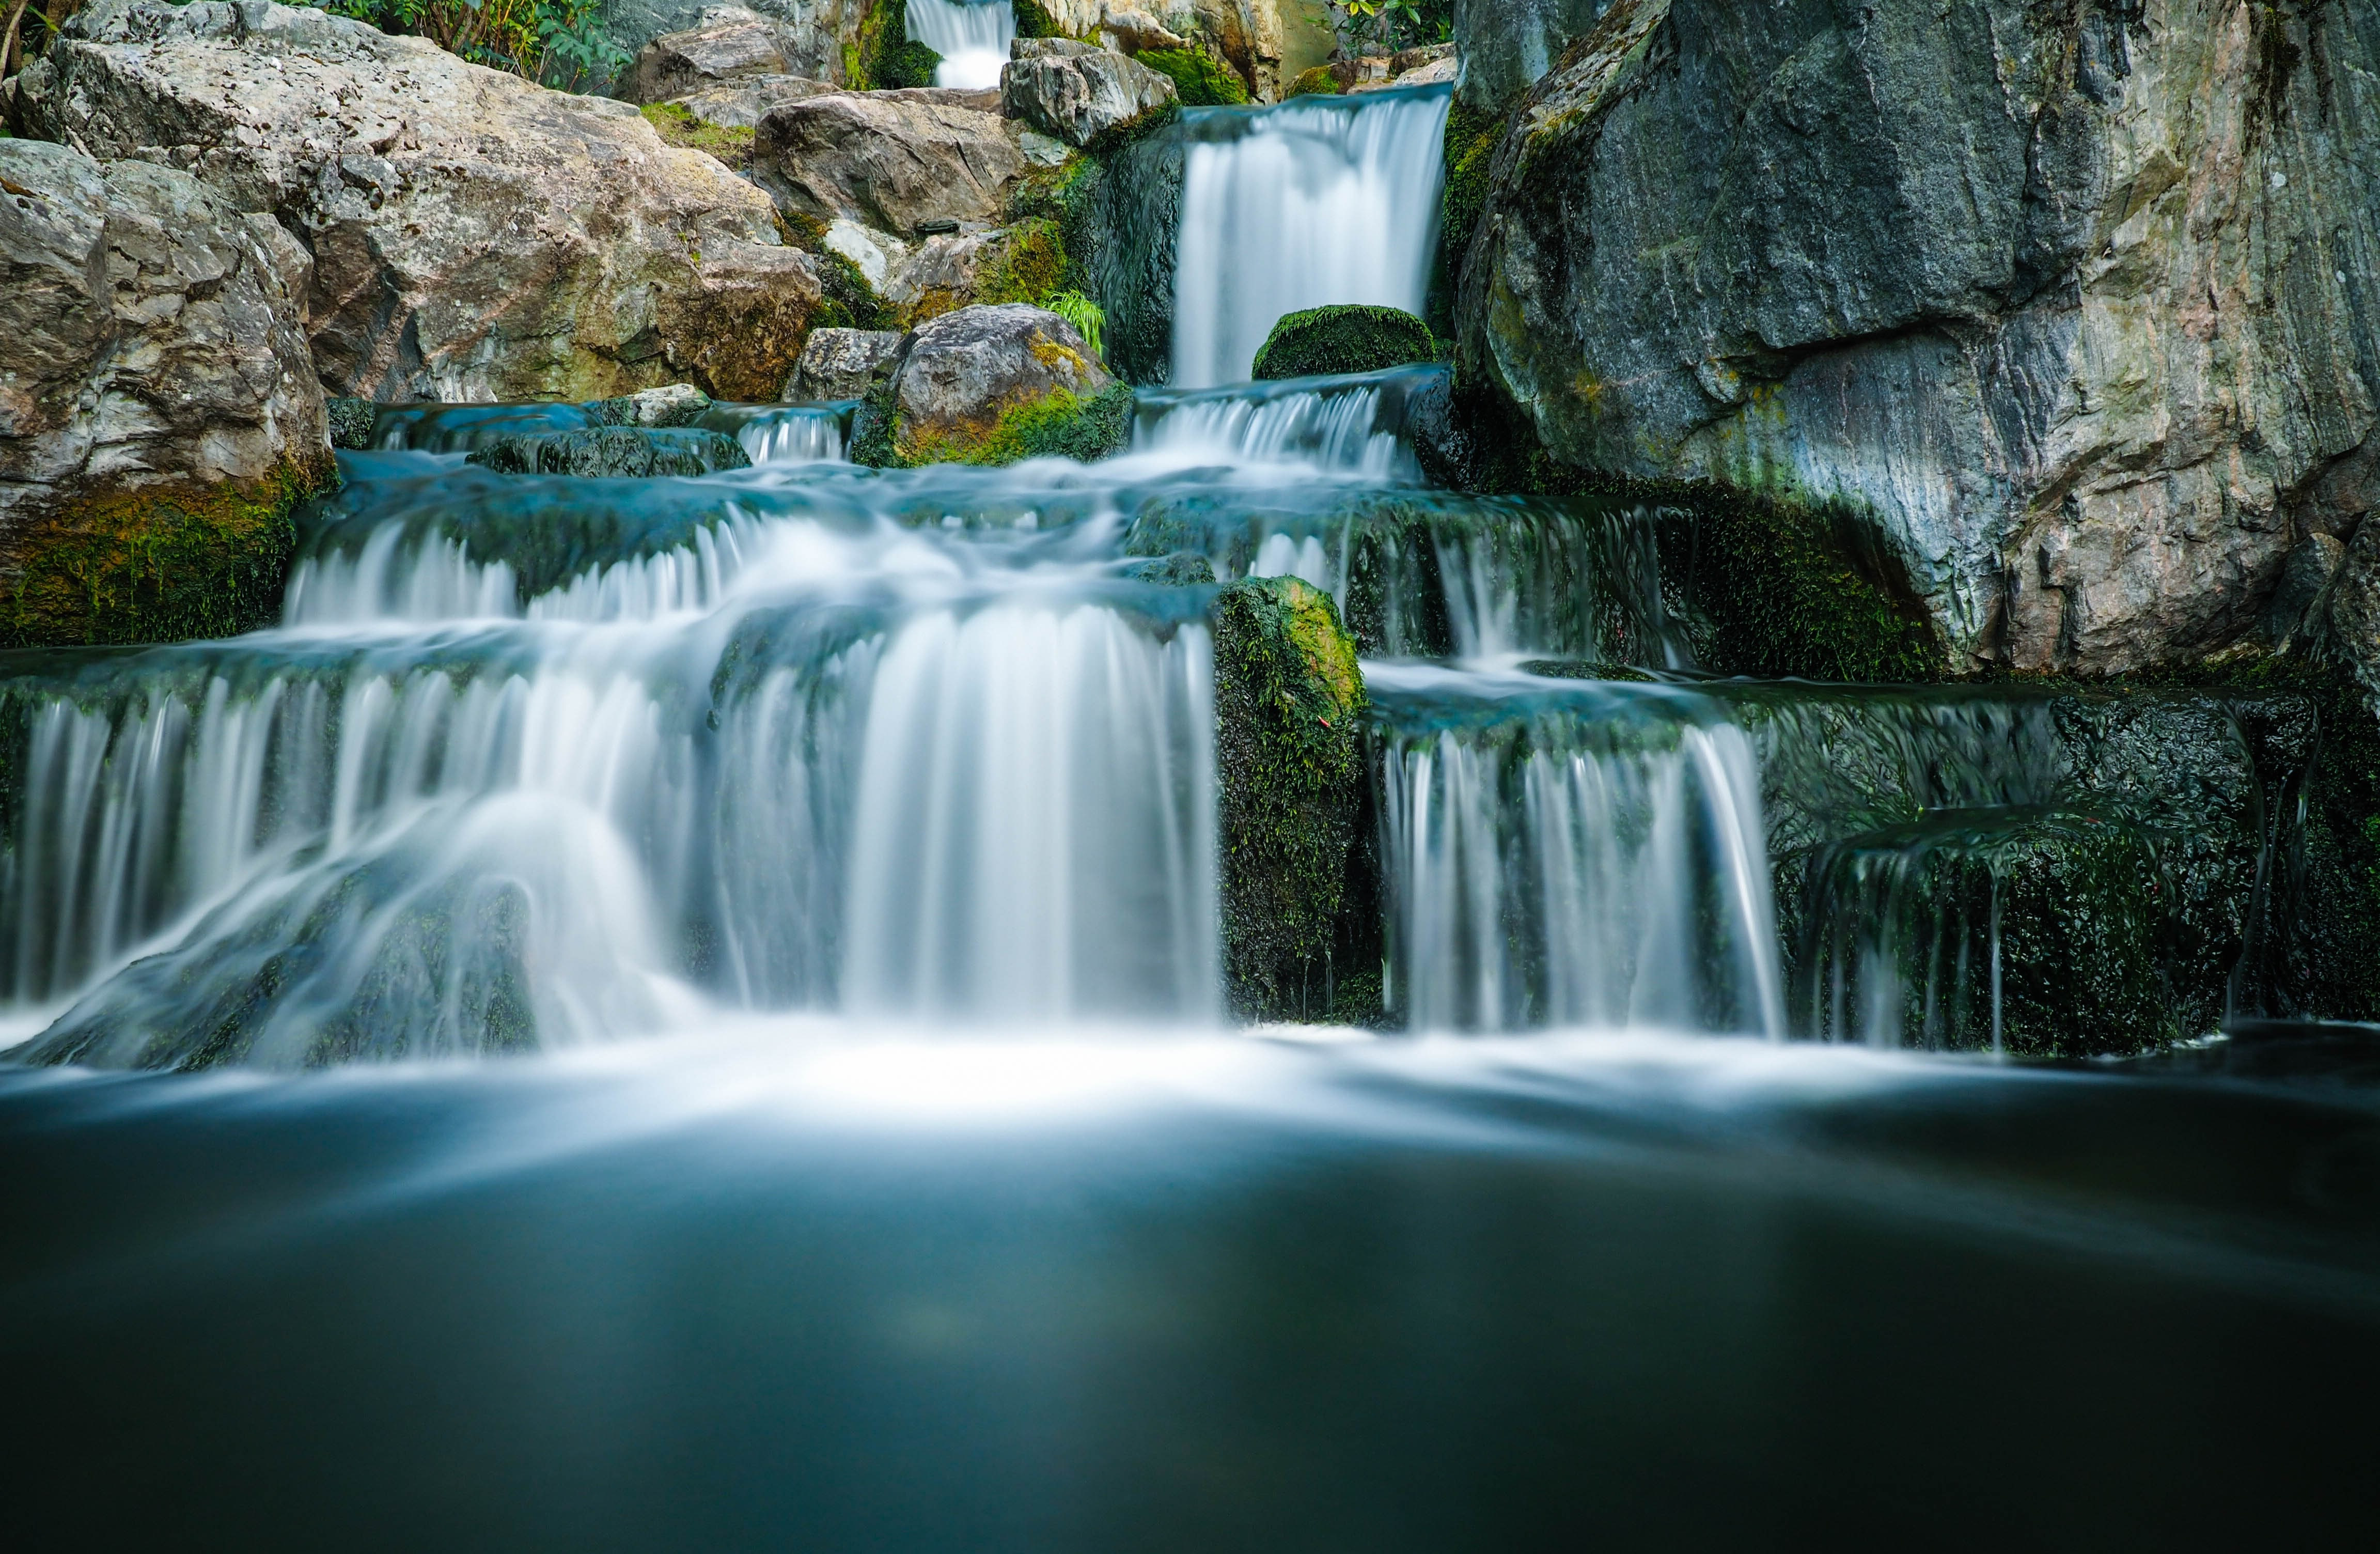 A staggered waterfall in motion flowing through a mossy rock mountain in Holland Park